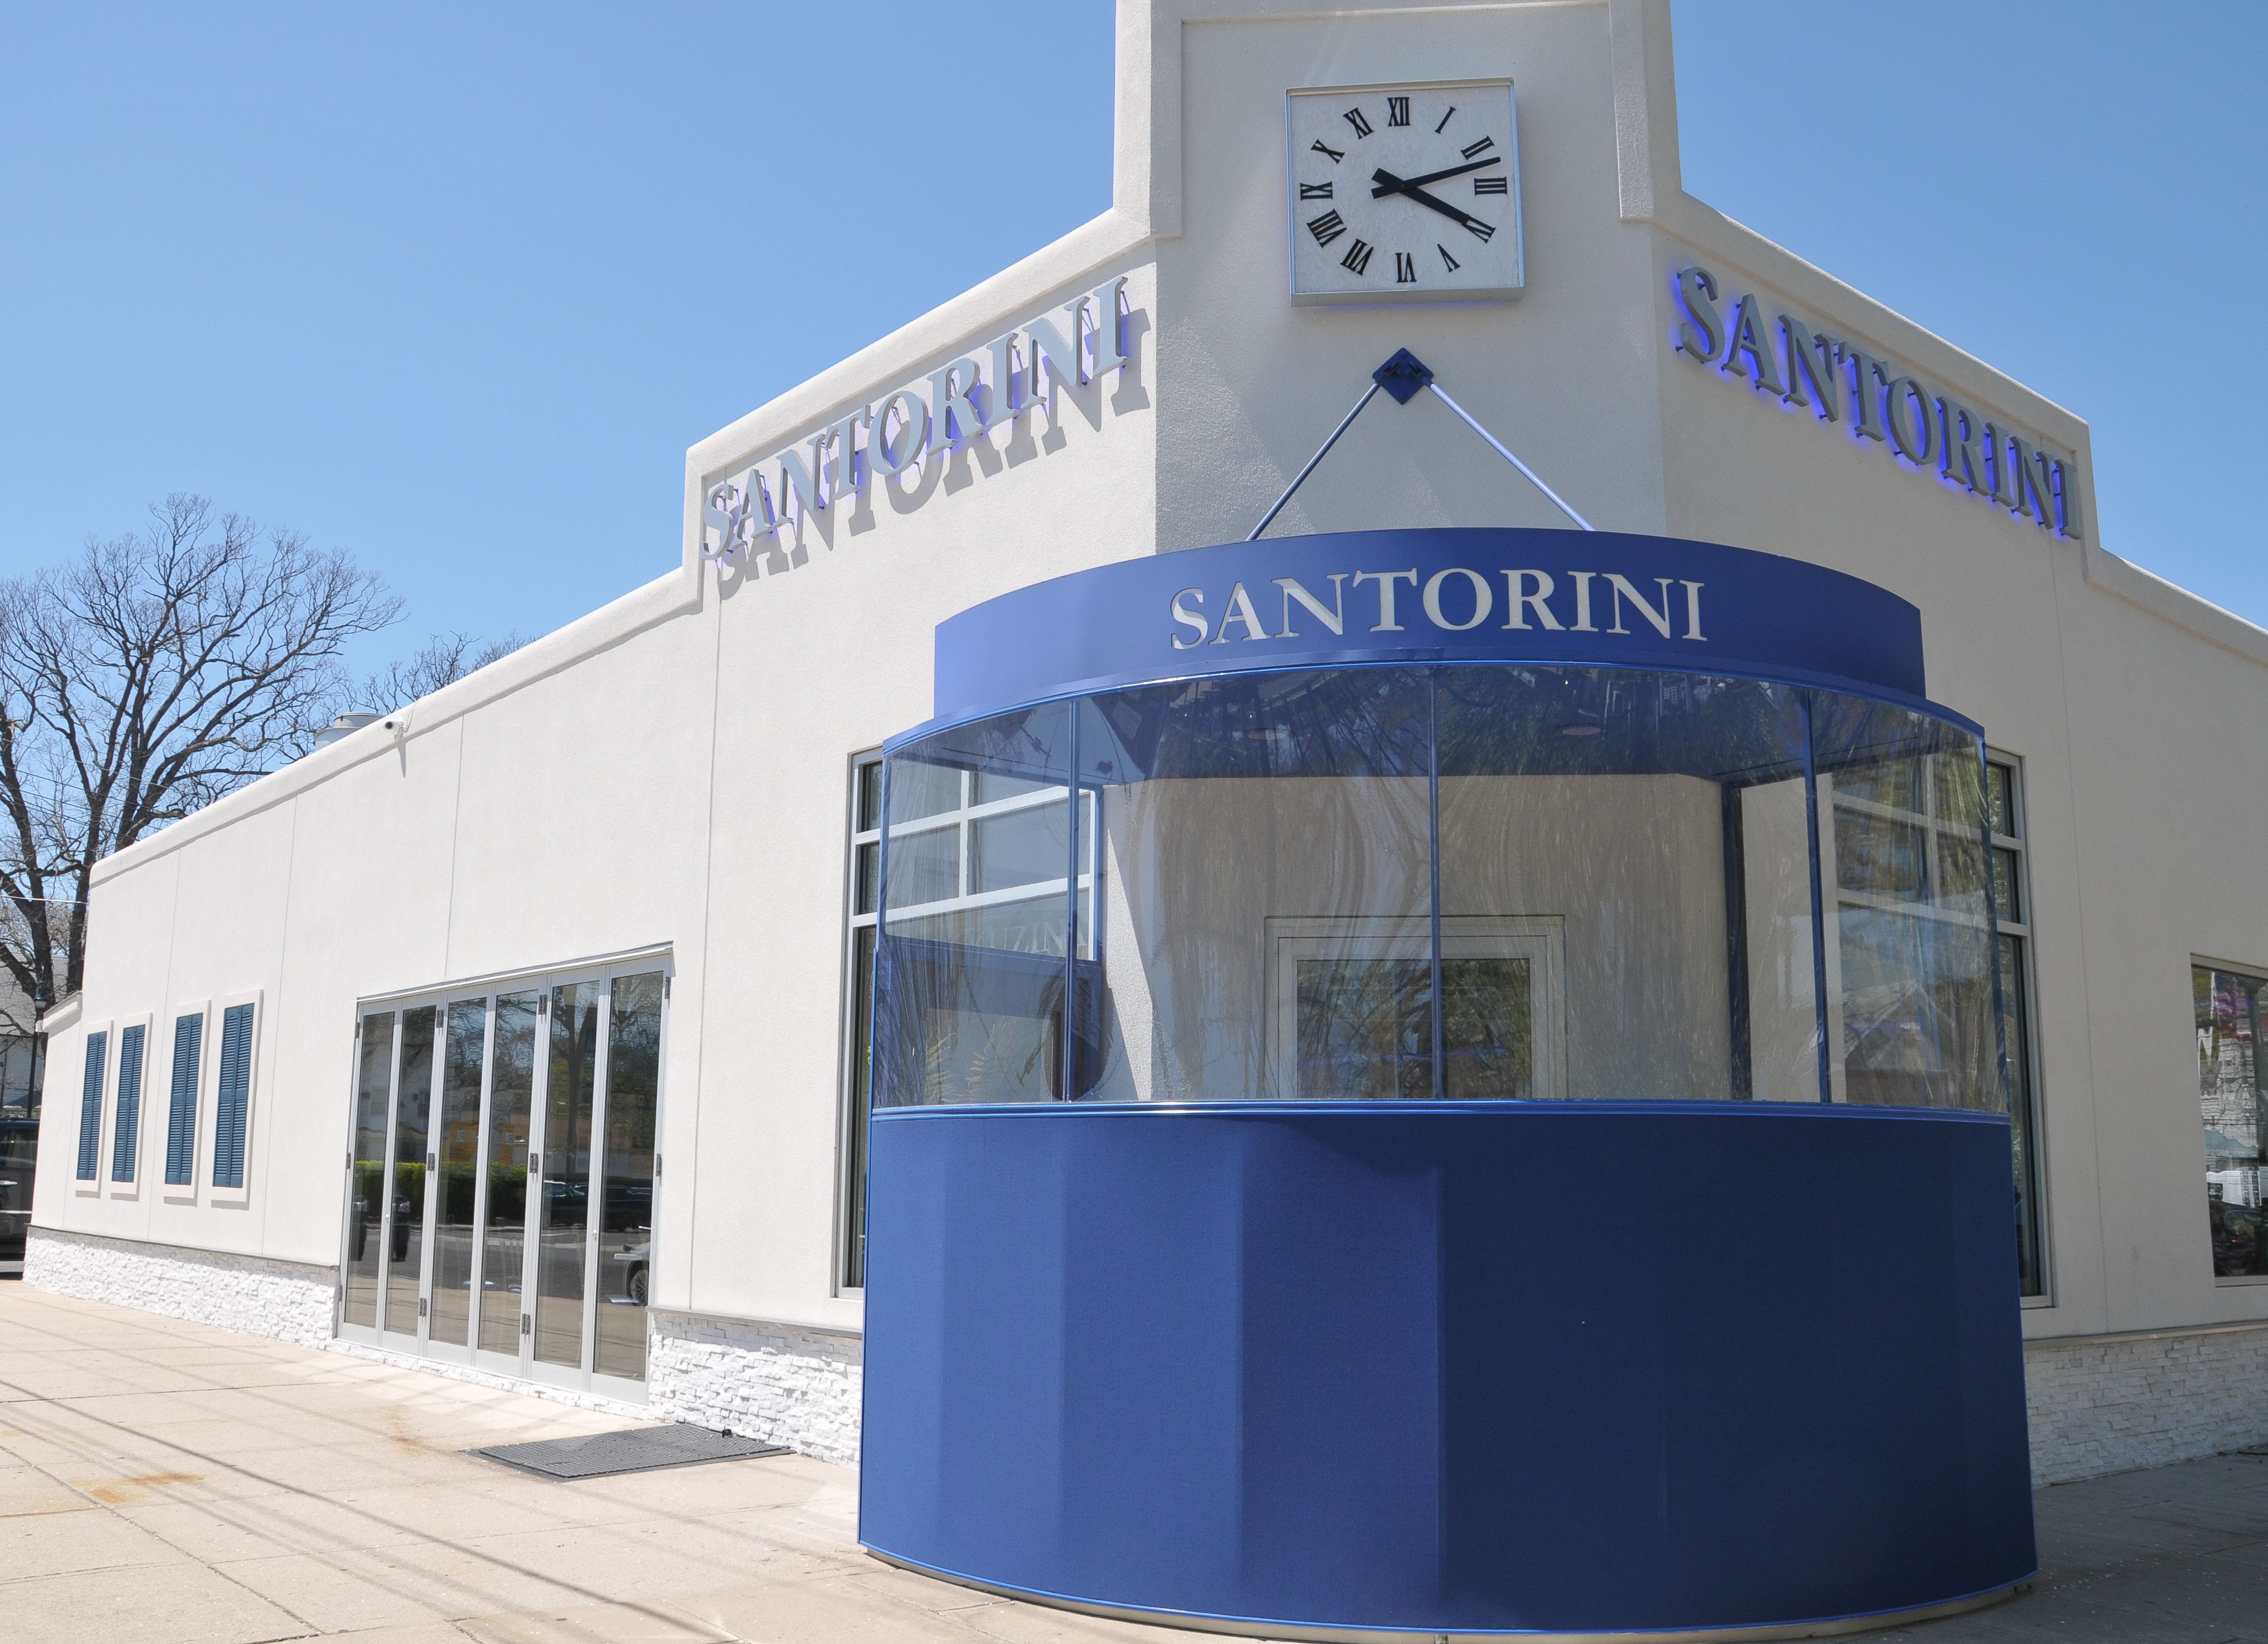 Santorini Is A Delicious Greek Restaurant In Merrick Ny Designed By Georgio Savva I Commercial Design Greek Restaurants Ferry Building San Francisco